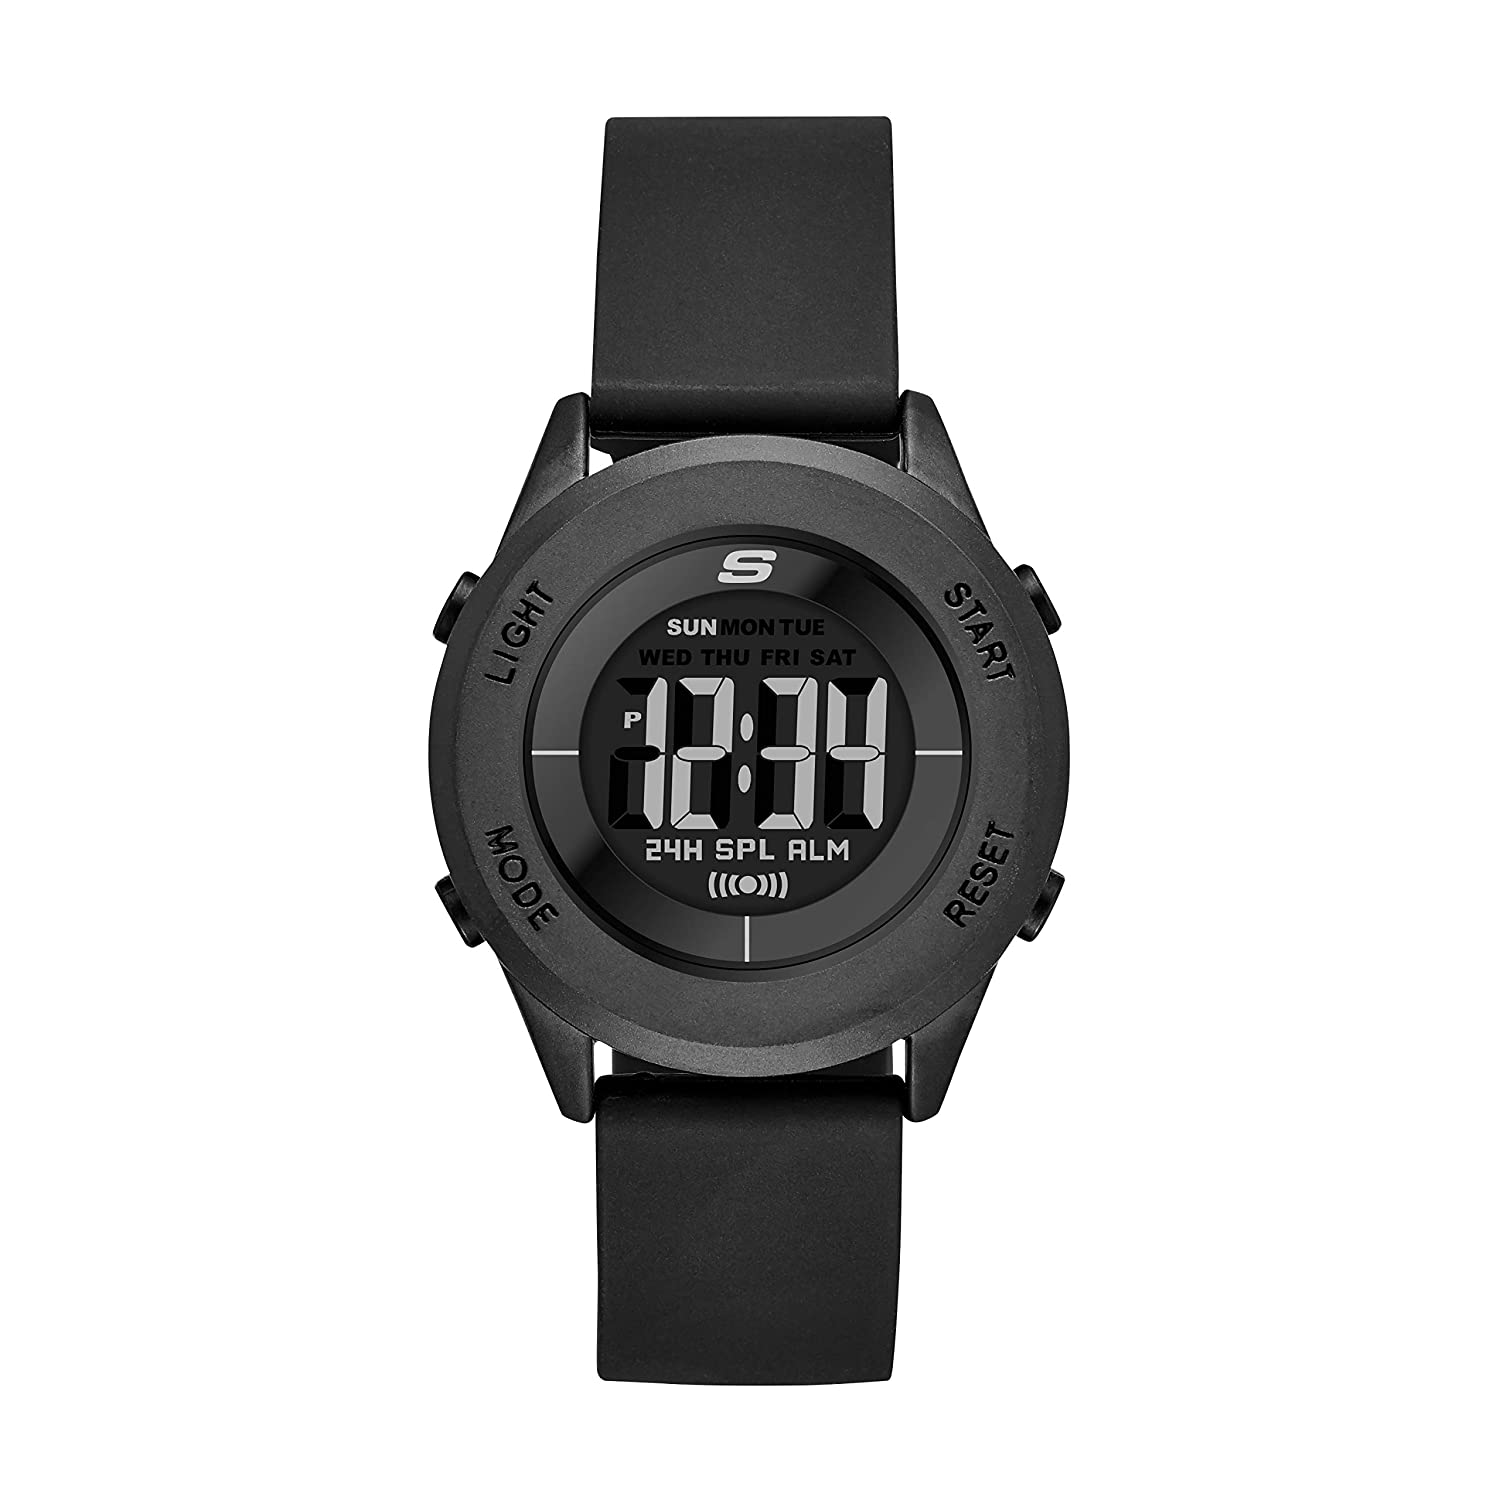 5a5b0fc3c5d Amazon.com  Skechers Women s Wiseburn Quartz Metal and Silicone Digital  Watch Color  Black (Model  SR6126)  Watches